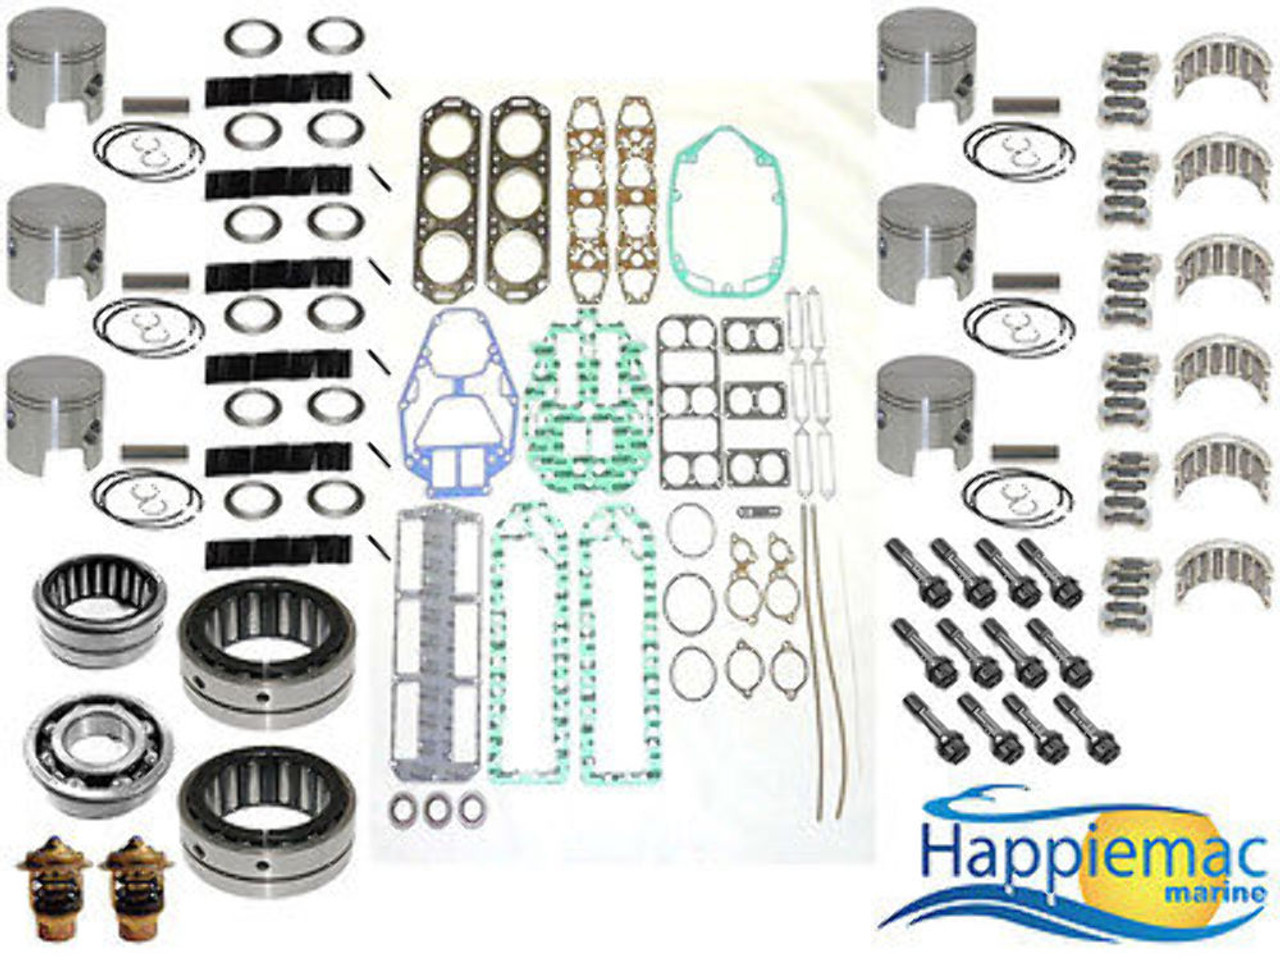 Mercury Mariner 2 0L V6 Powerhead Rebuild Kit 1984-91 135 150 XR2 Main  Bearings